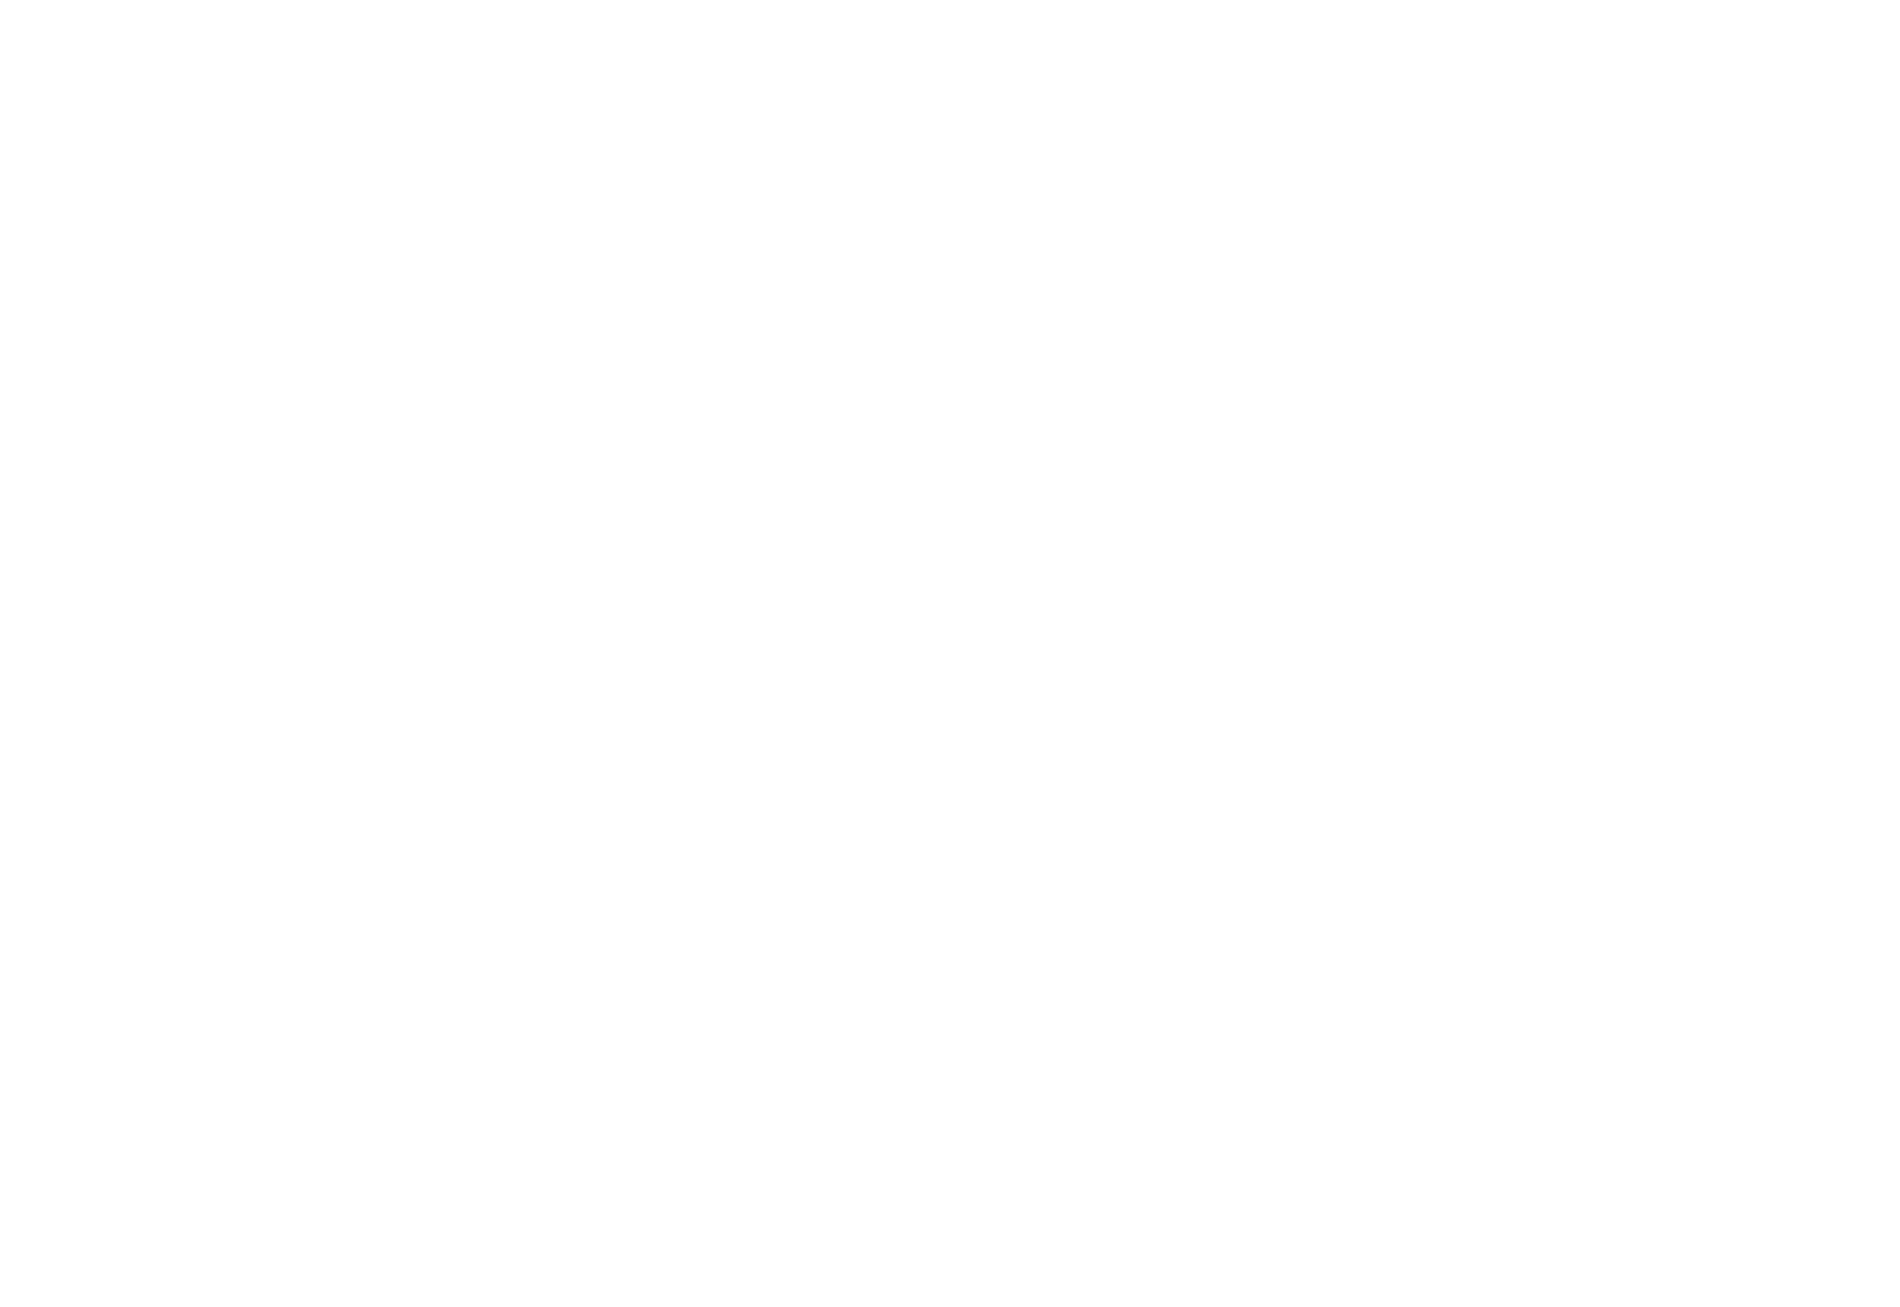 motionball For Special Olympics | motionball pour Olympic Speciaux